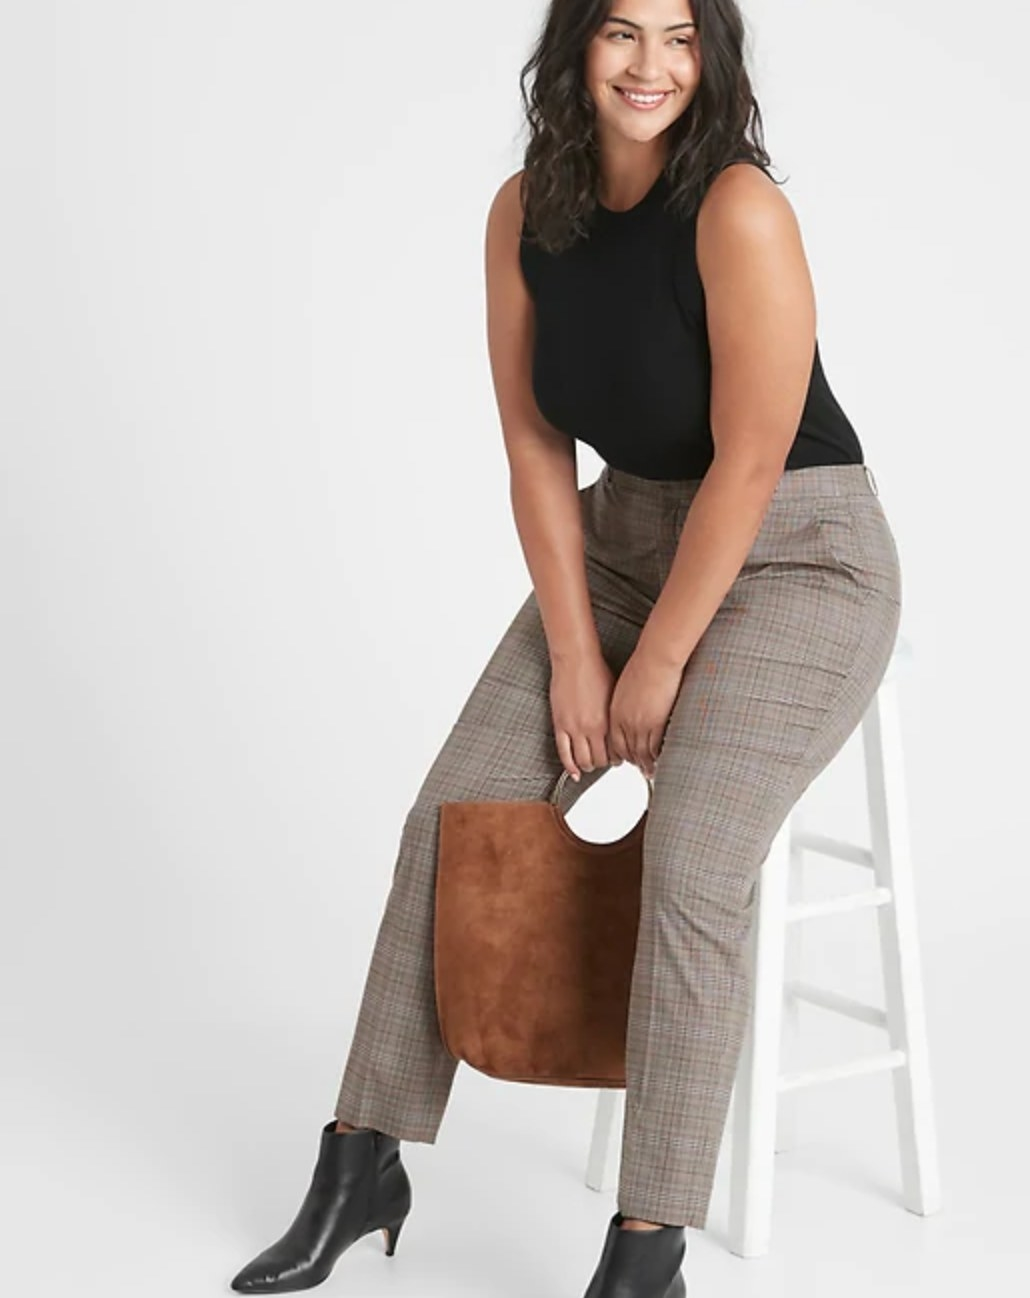 The pair of washable curvy pants in brown plaid